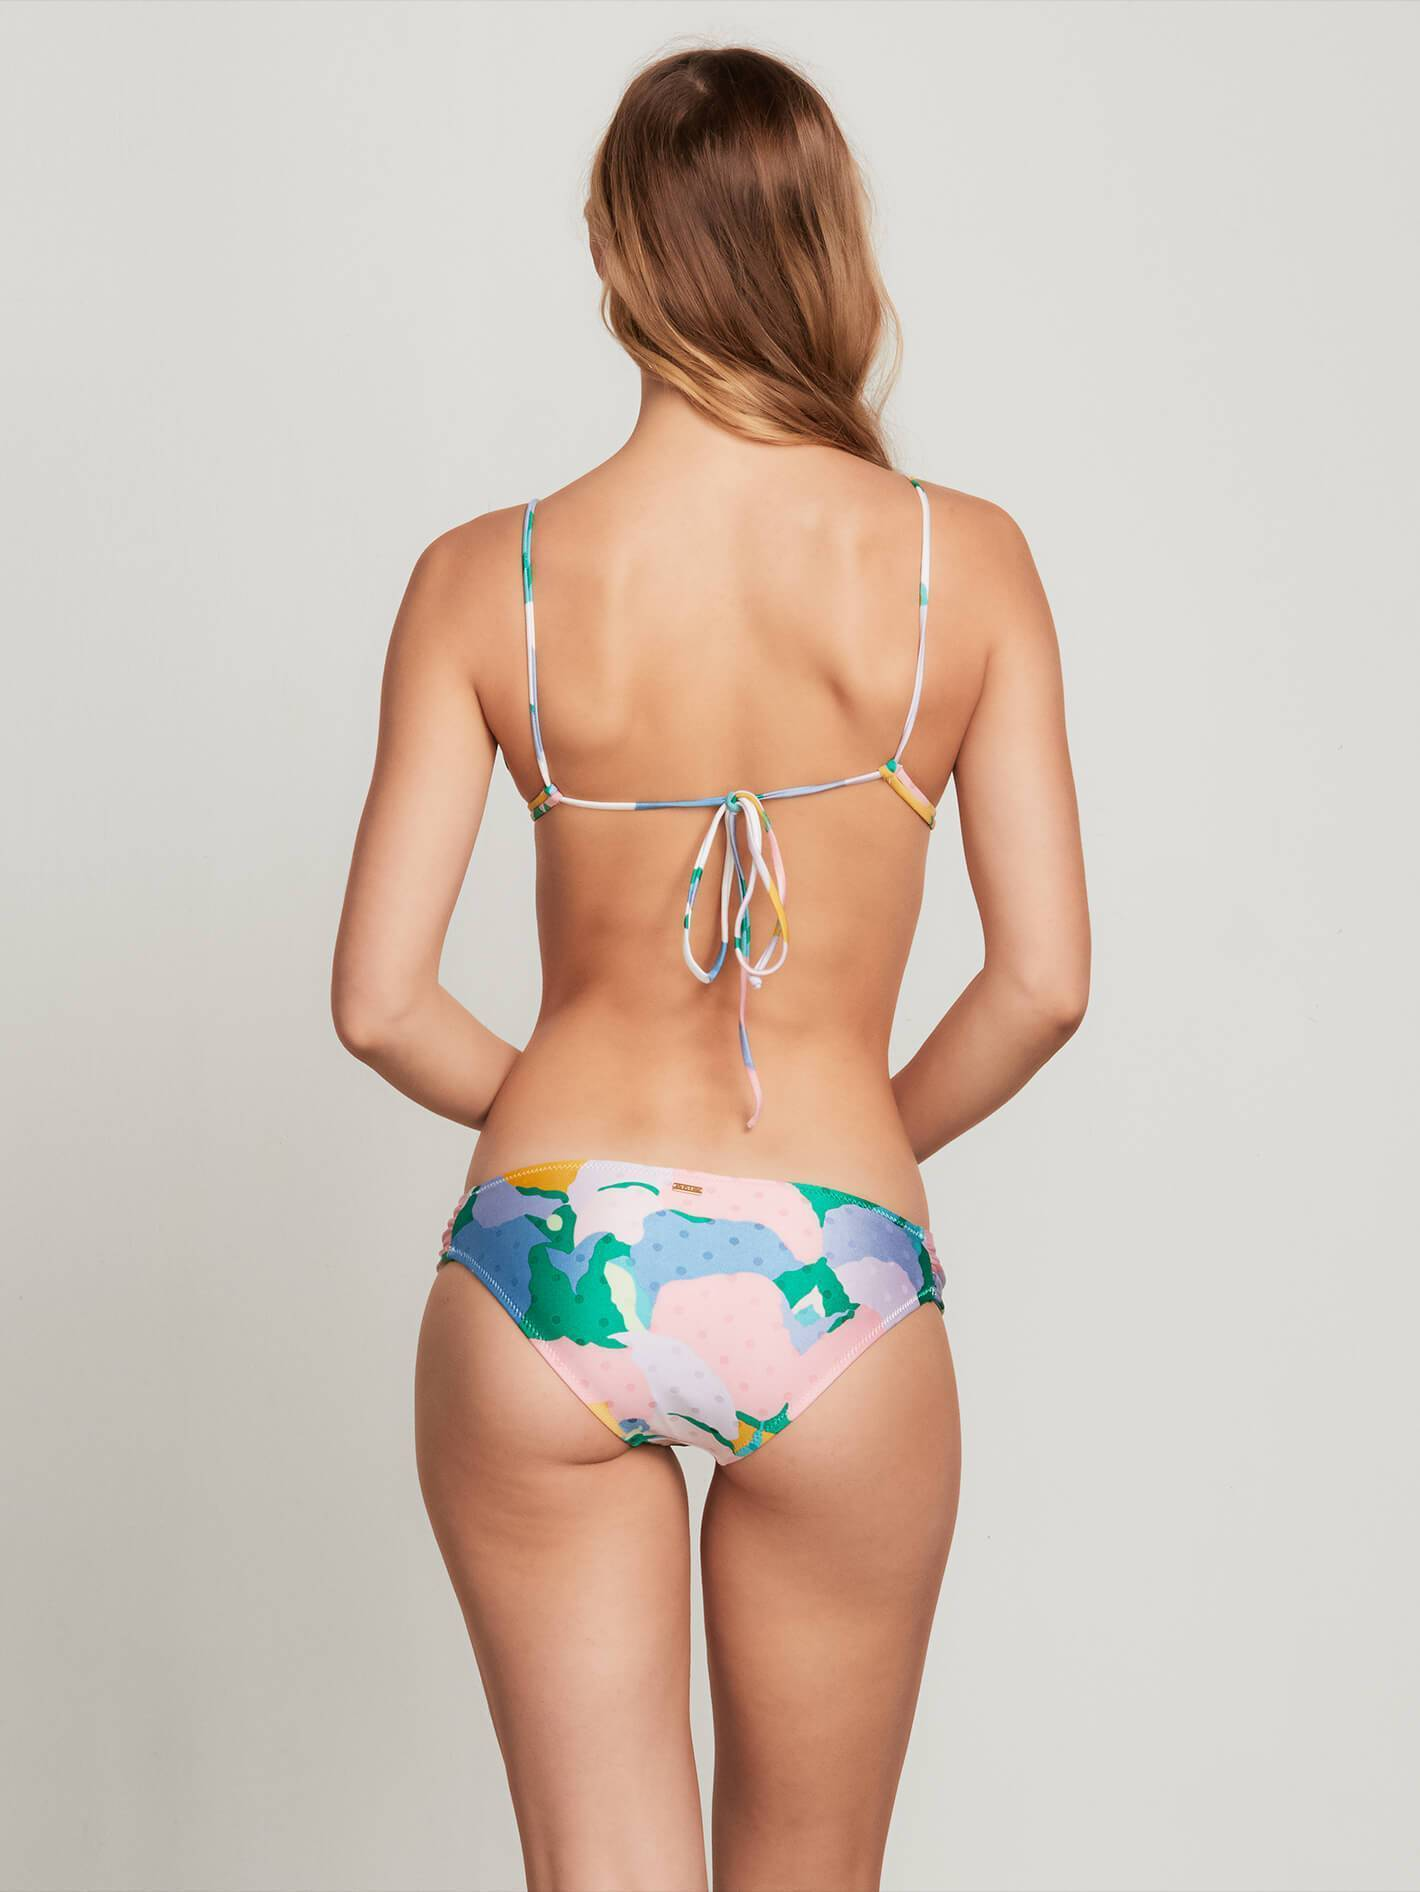 Volcom Growing On Me Bikini Top - 88 Gear